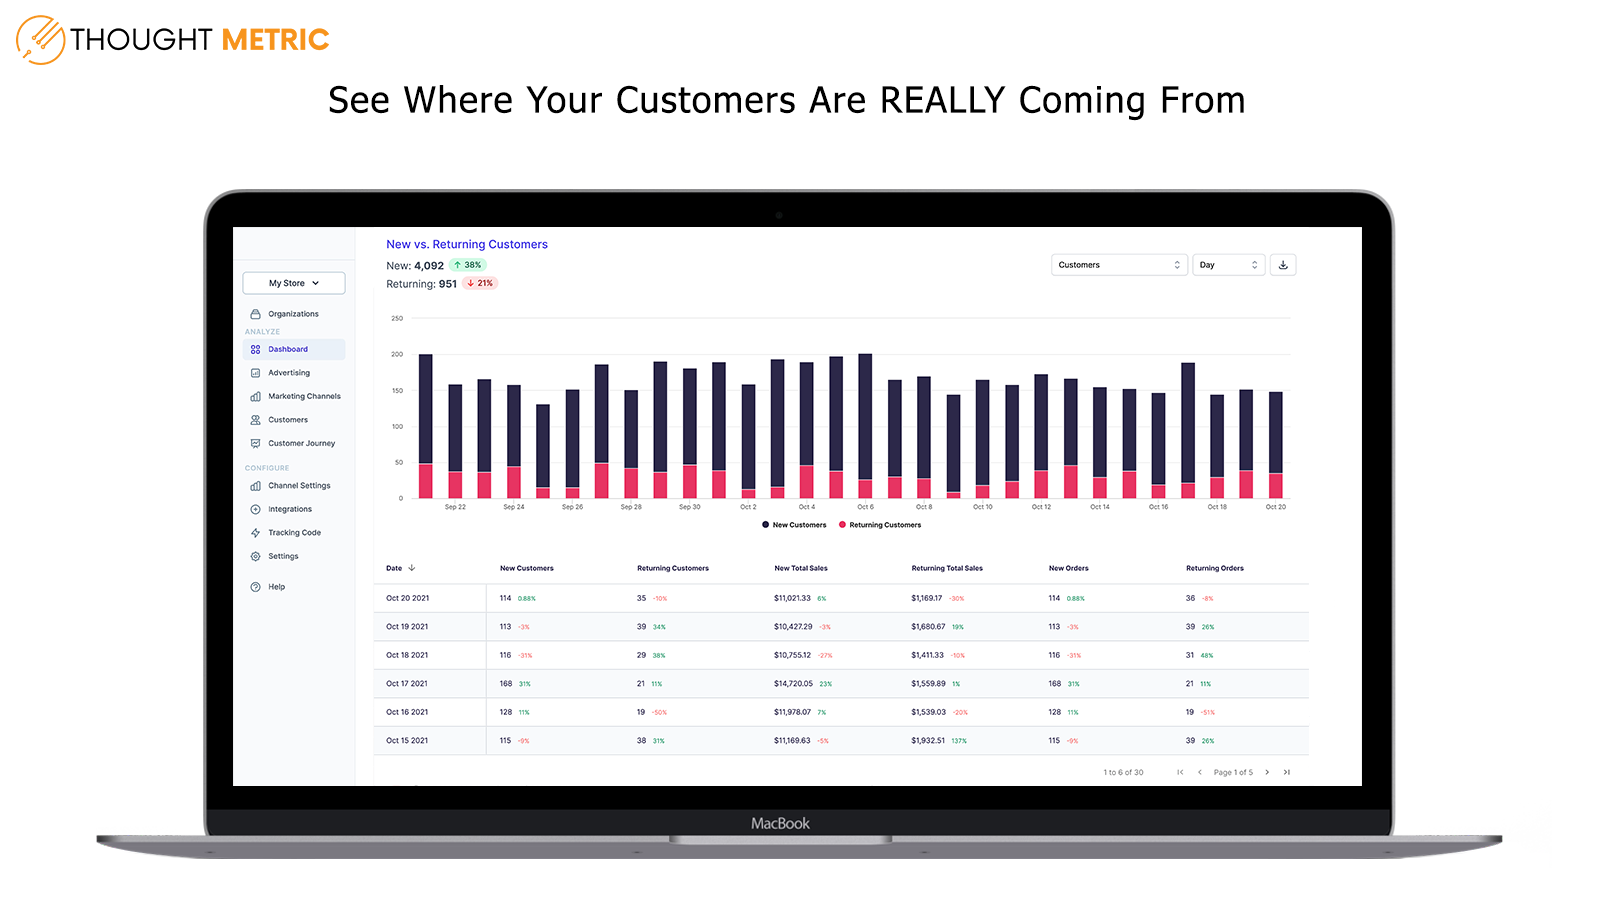 See Where Your Customers Are REALLY Coming From